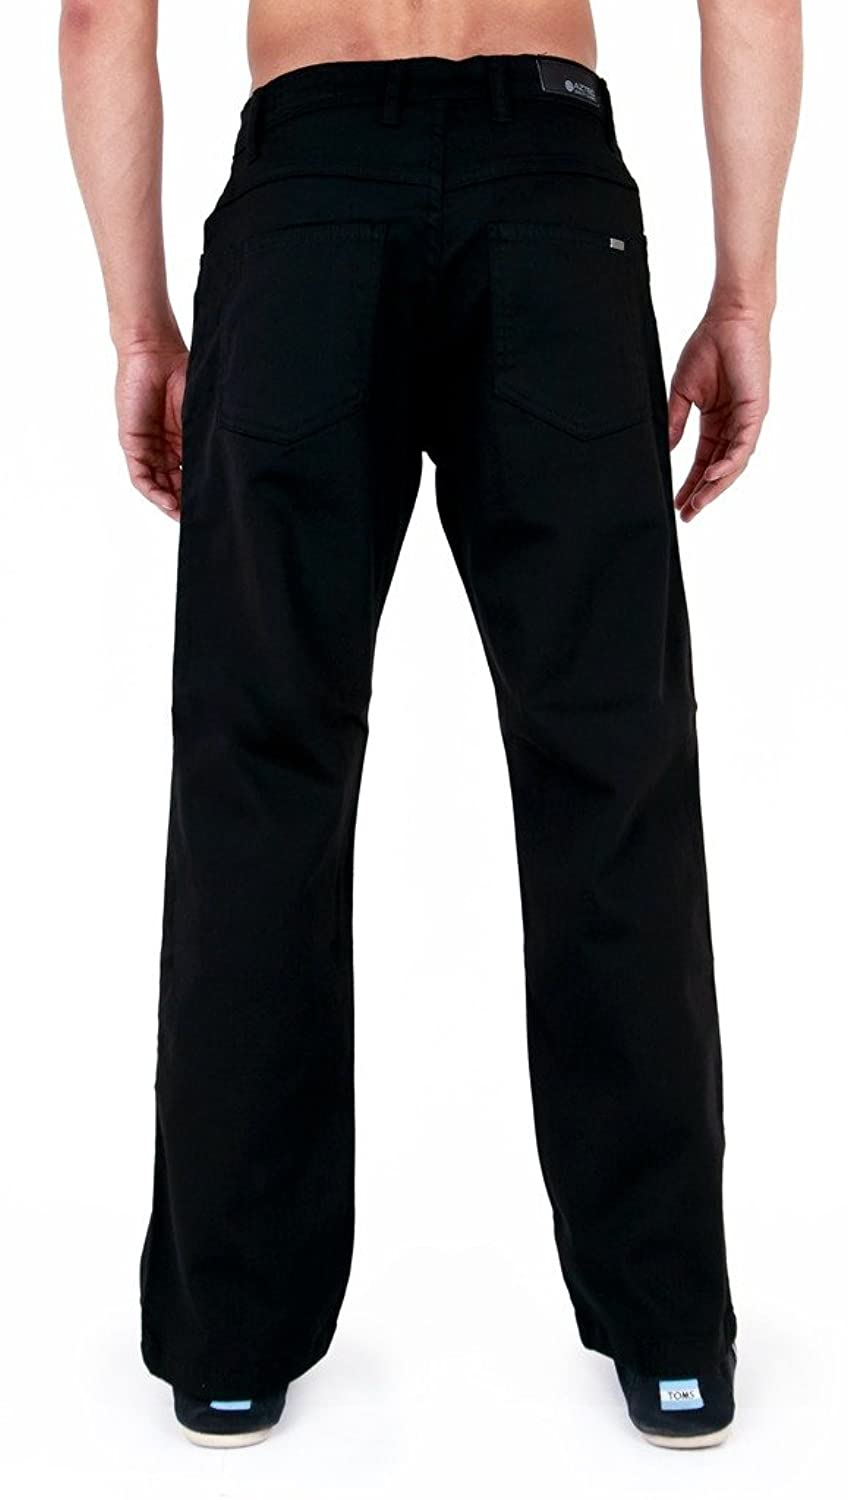 Mens Aztec Chino Stretch Classic Fit jeans Black 34l: Amazon.co.uk: Clothing